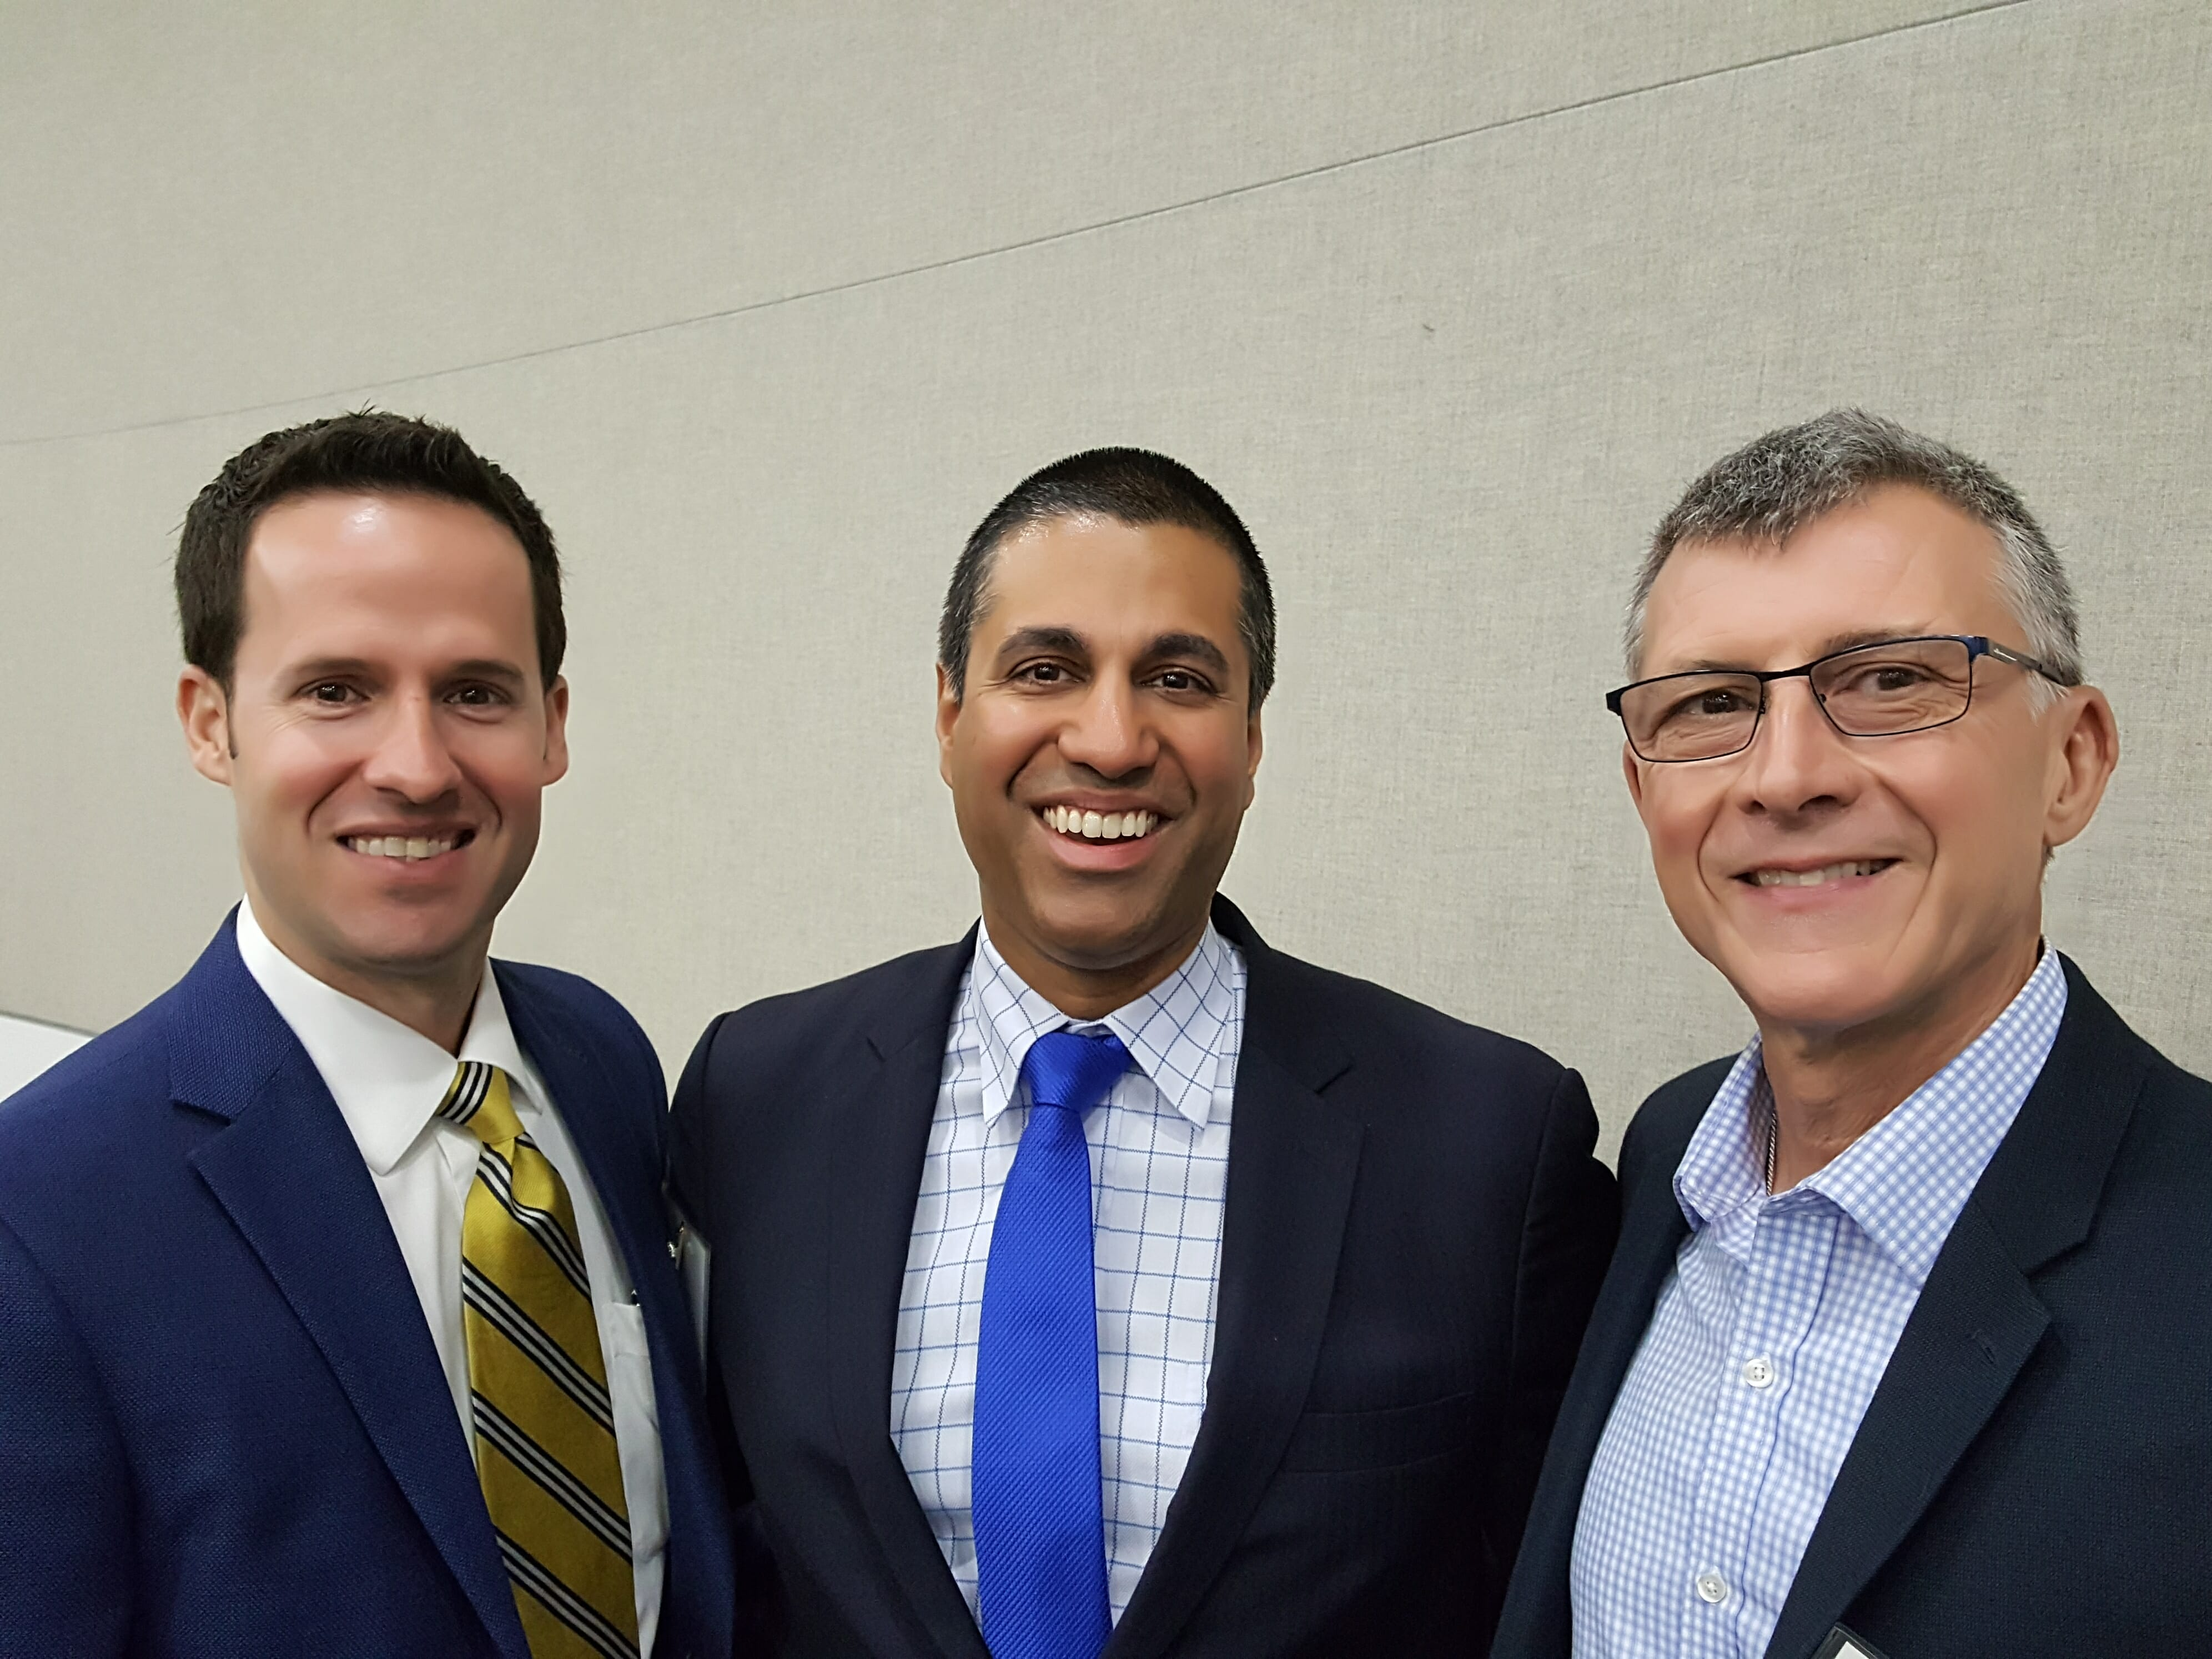 LOBBYING UPDATE: NaLA Members Steve Klein and Jose Cortes Meet FCC Chairman Ajit Pai